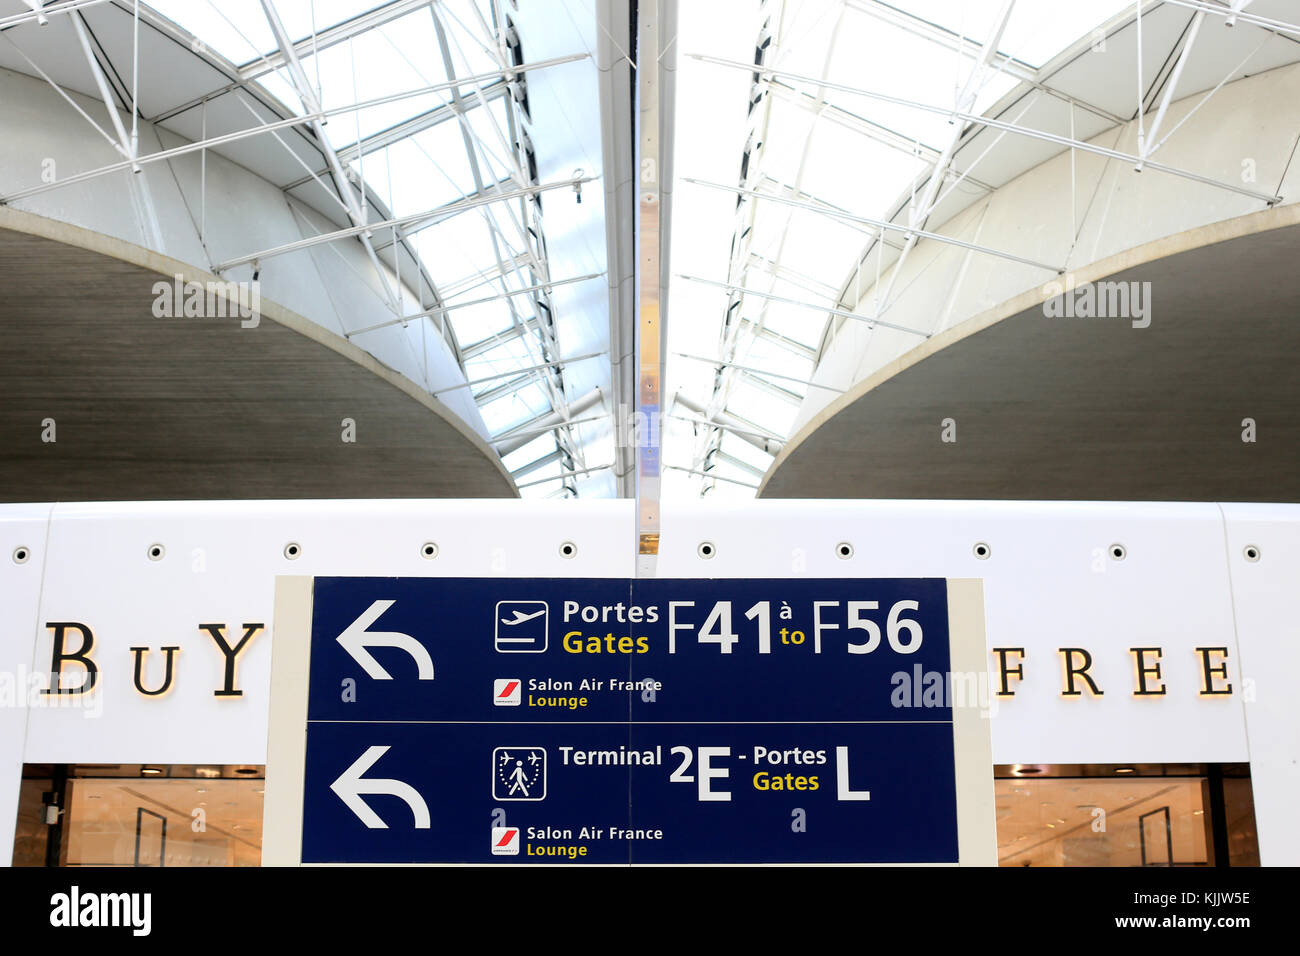 Charles de Gaulle airport. Duty Free.  Roissy. France. - Stock Image